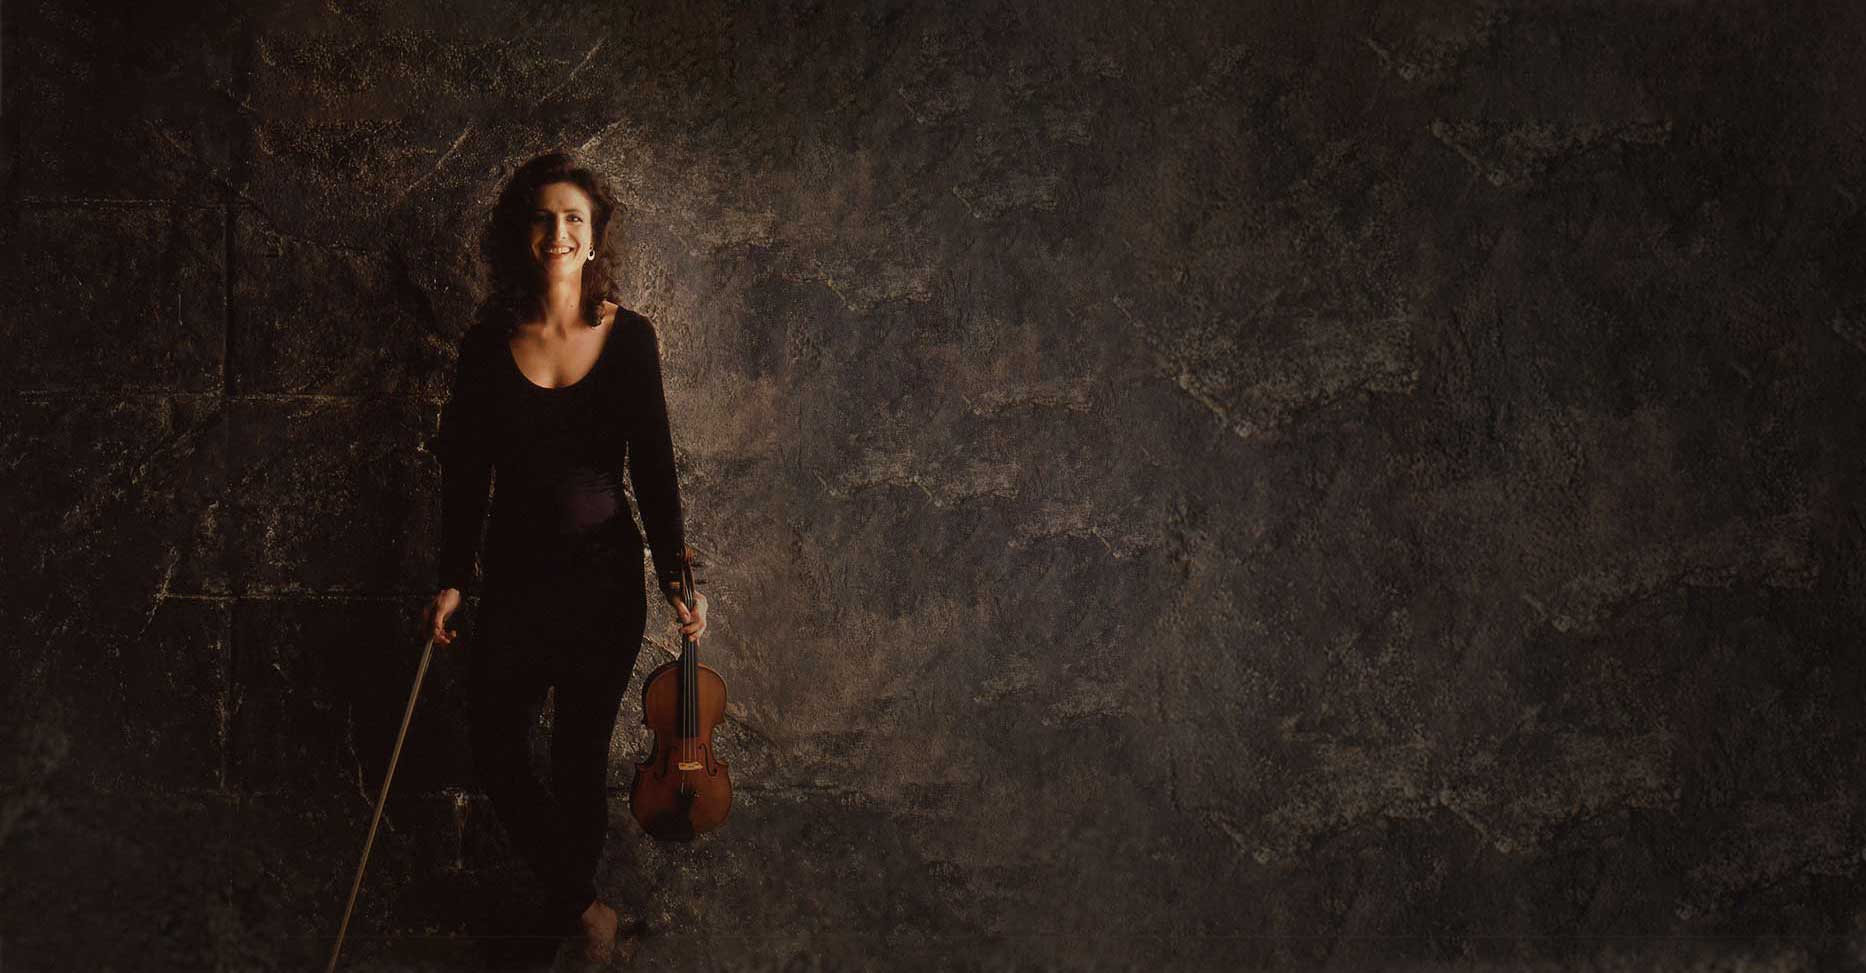 madeleine mitchell against a stone wall background and holding a violin